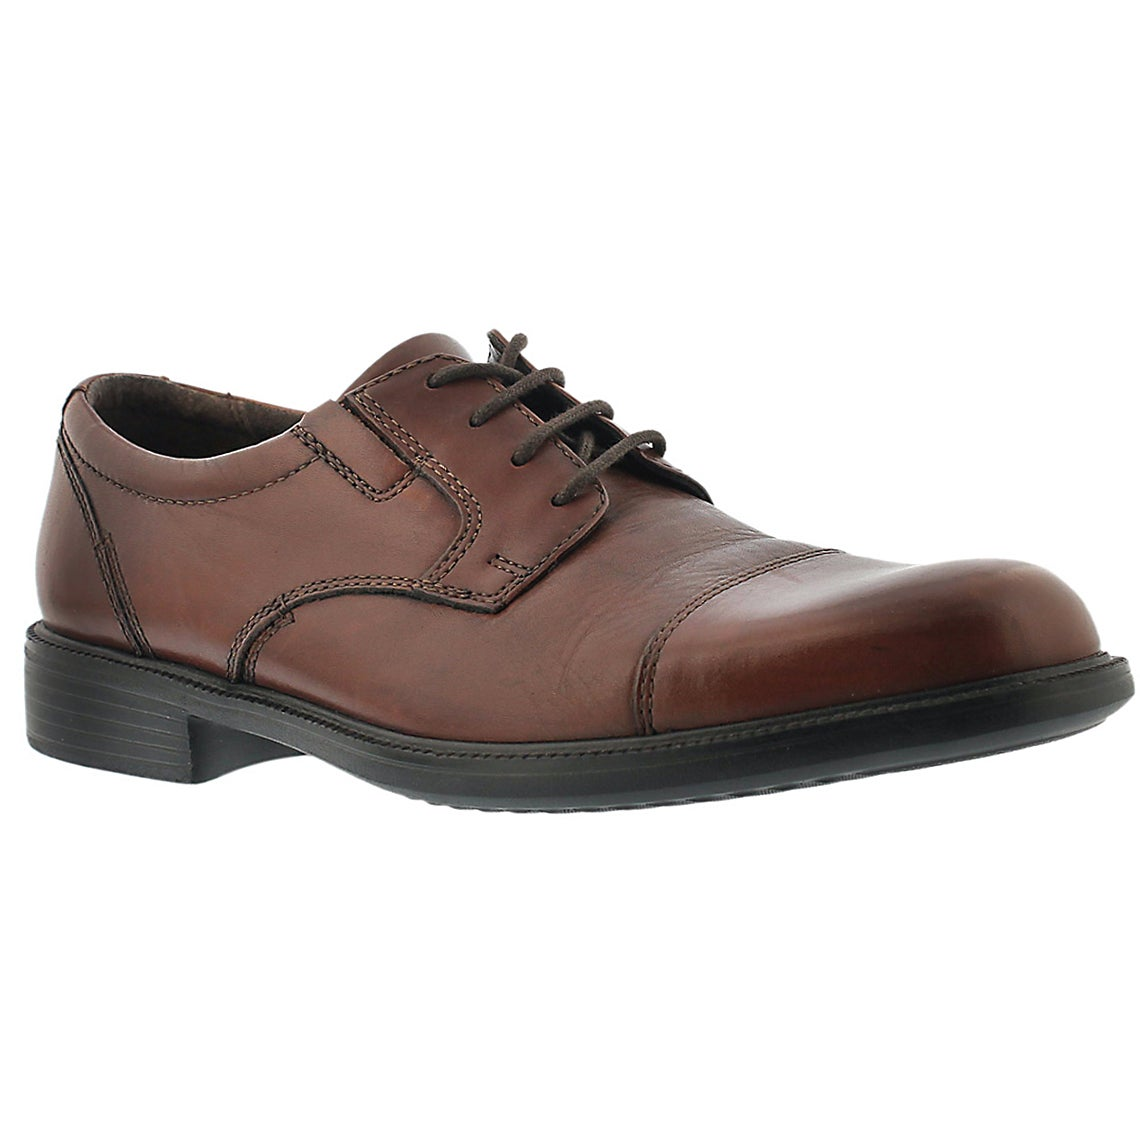 Mns Bardwell Limit brn Toe Cap Oxford